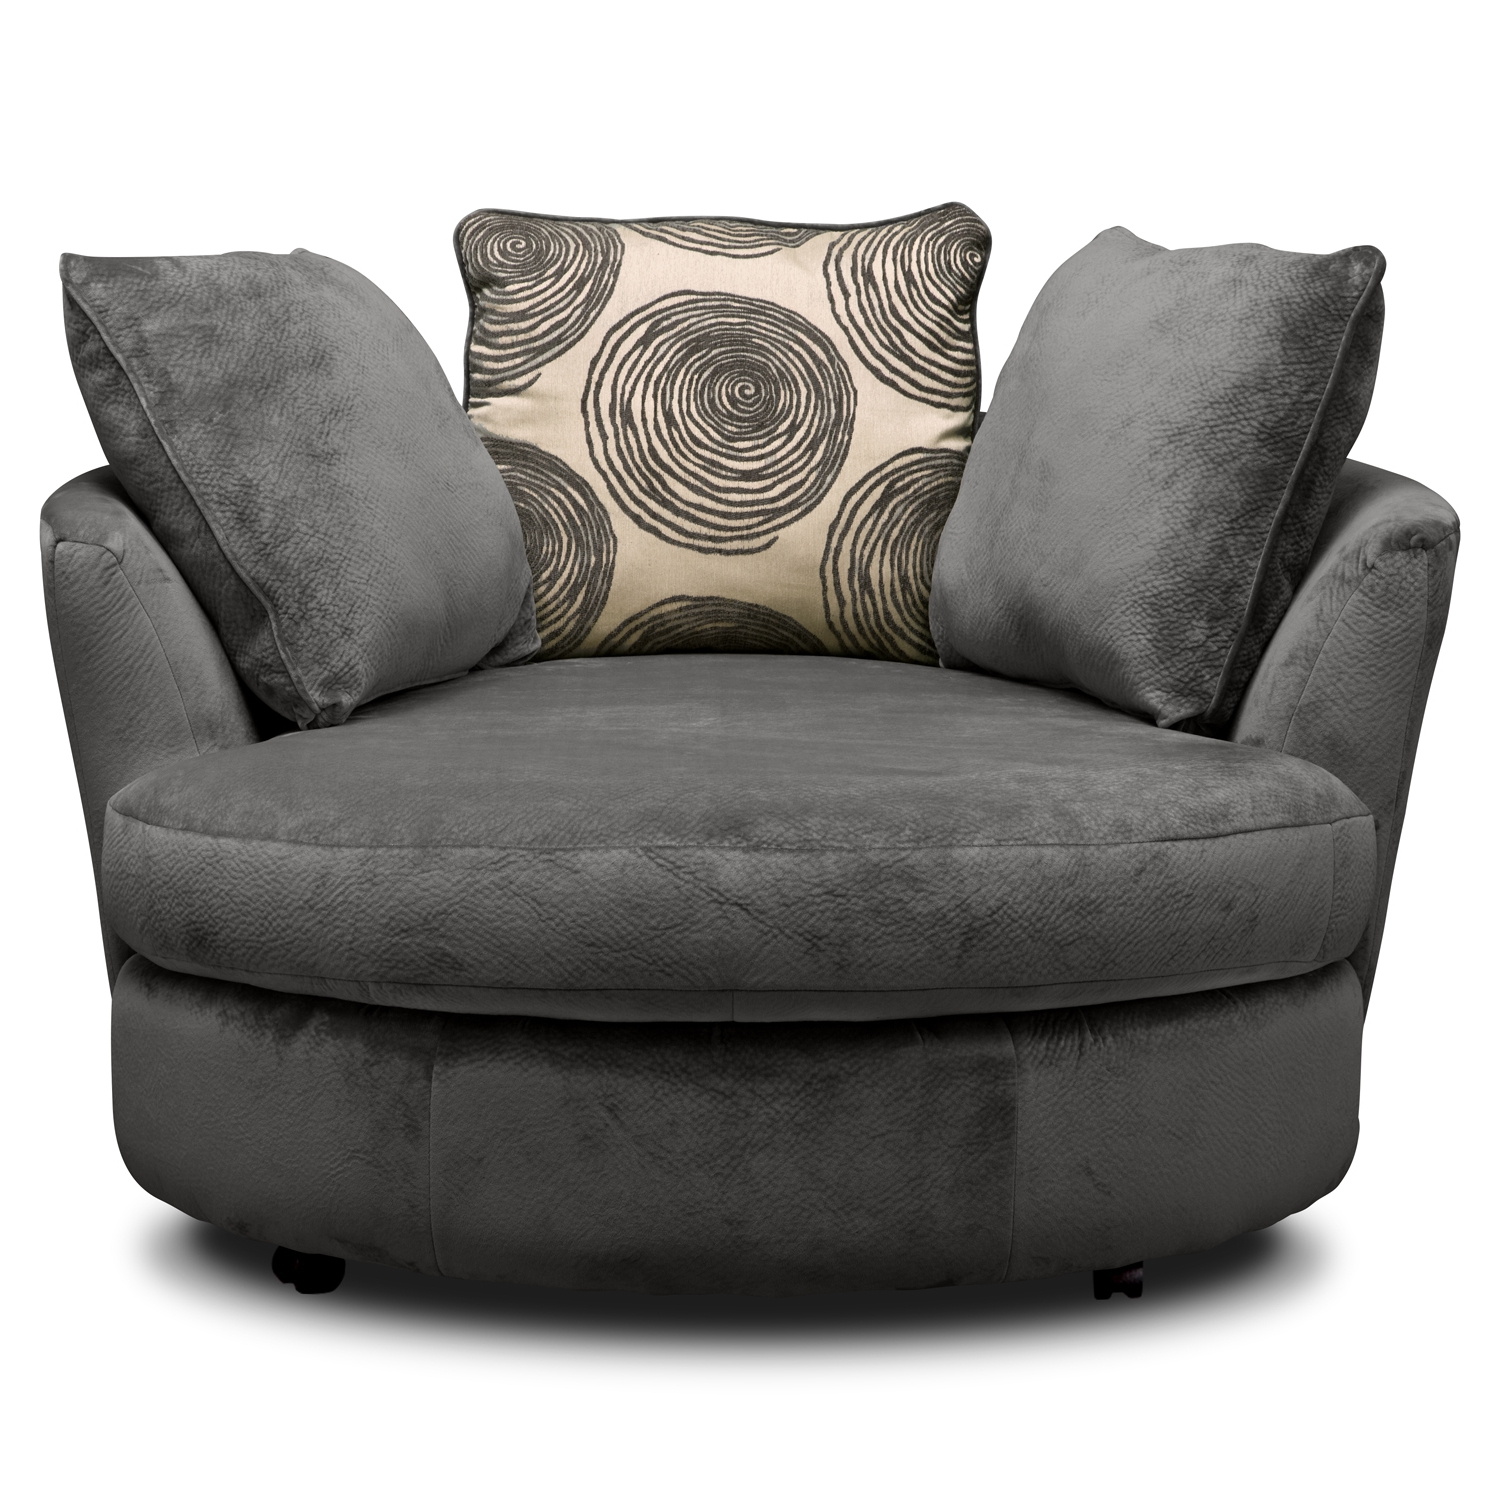 Popular Amazing Circle Sofa Chair 68 For Modern Sofa Ideas With Circle Sofa Throughout Circle Sofa Chairs (View 15 of 20)